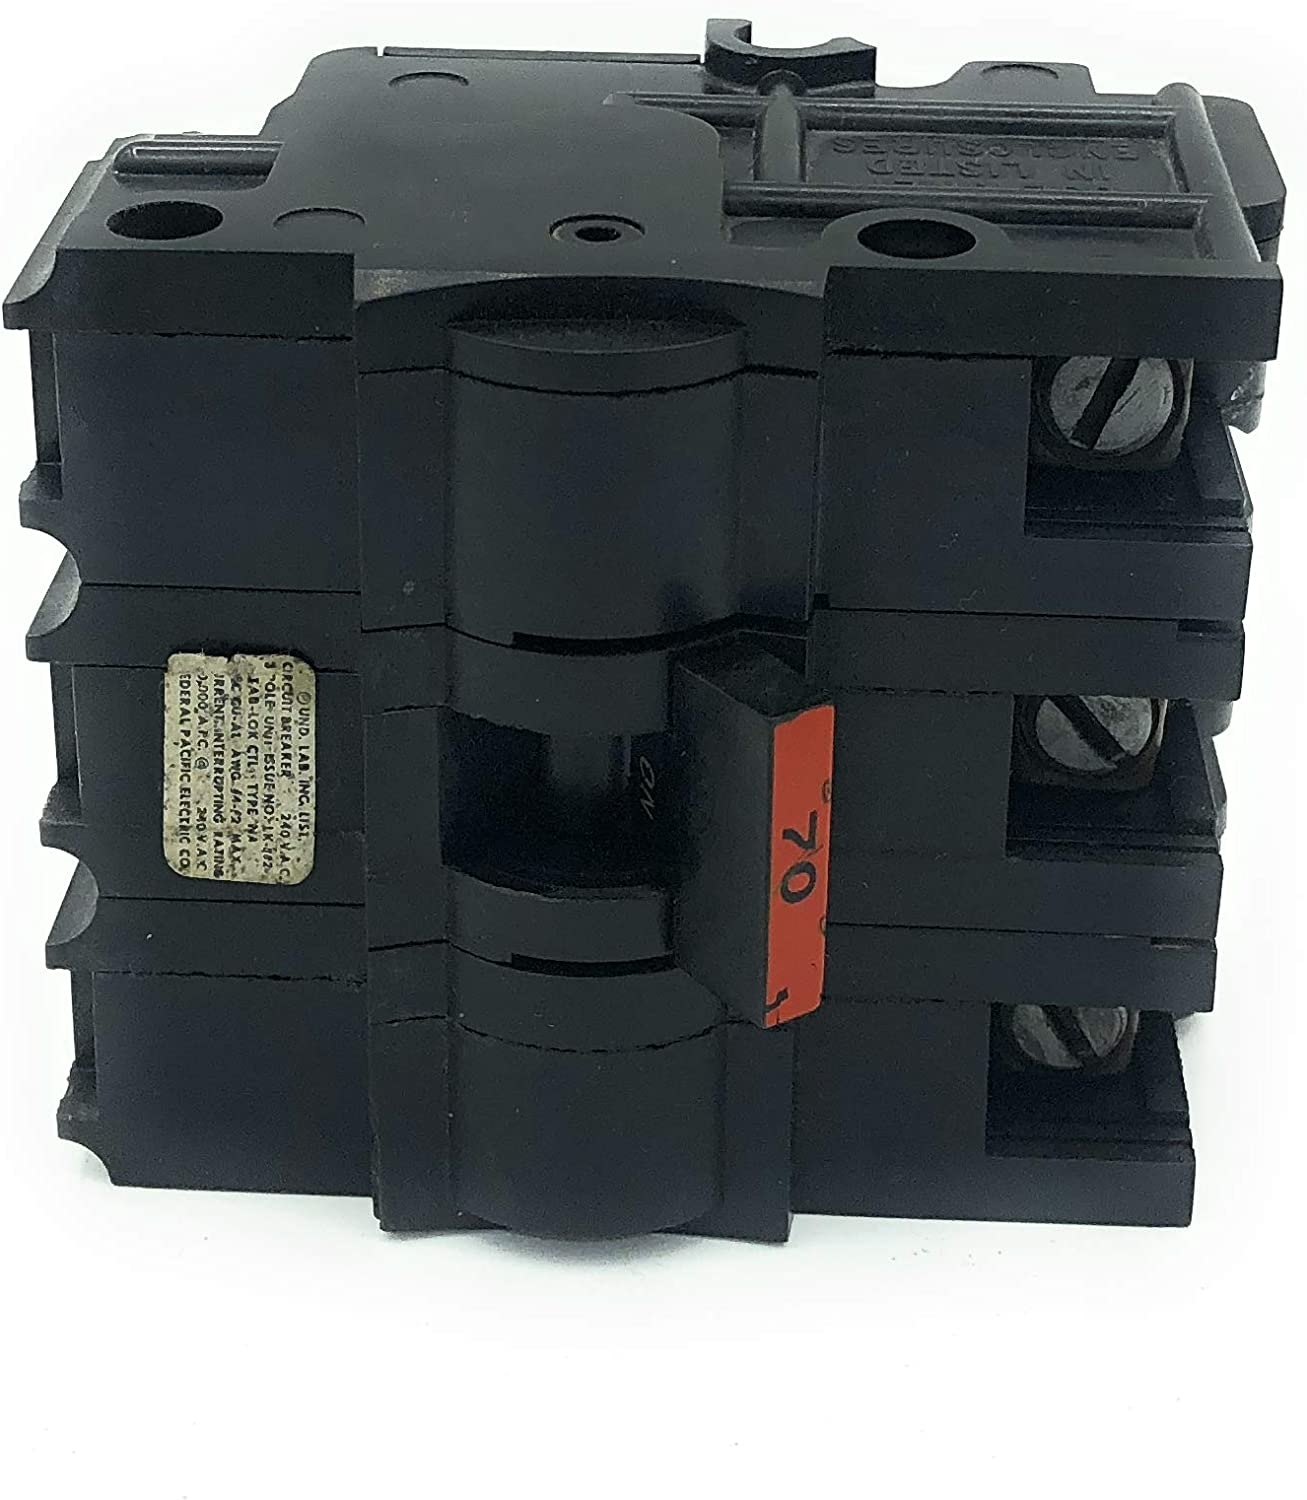 FEDERAL PACIFIC FPE NA30 STAB-LOK BREAKER NA130 THICK 30 AMP 1 POLE 1